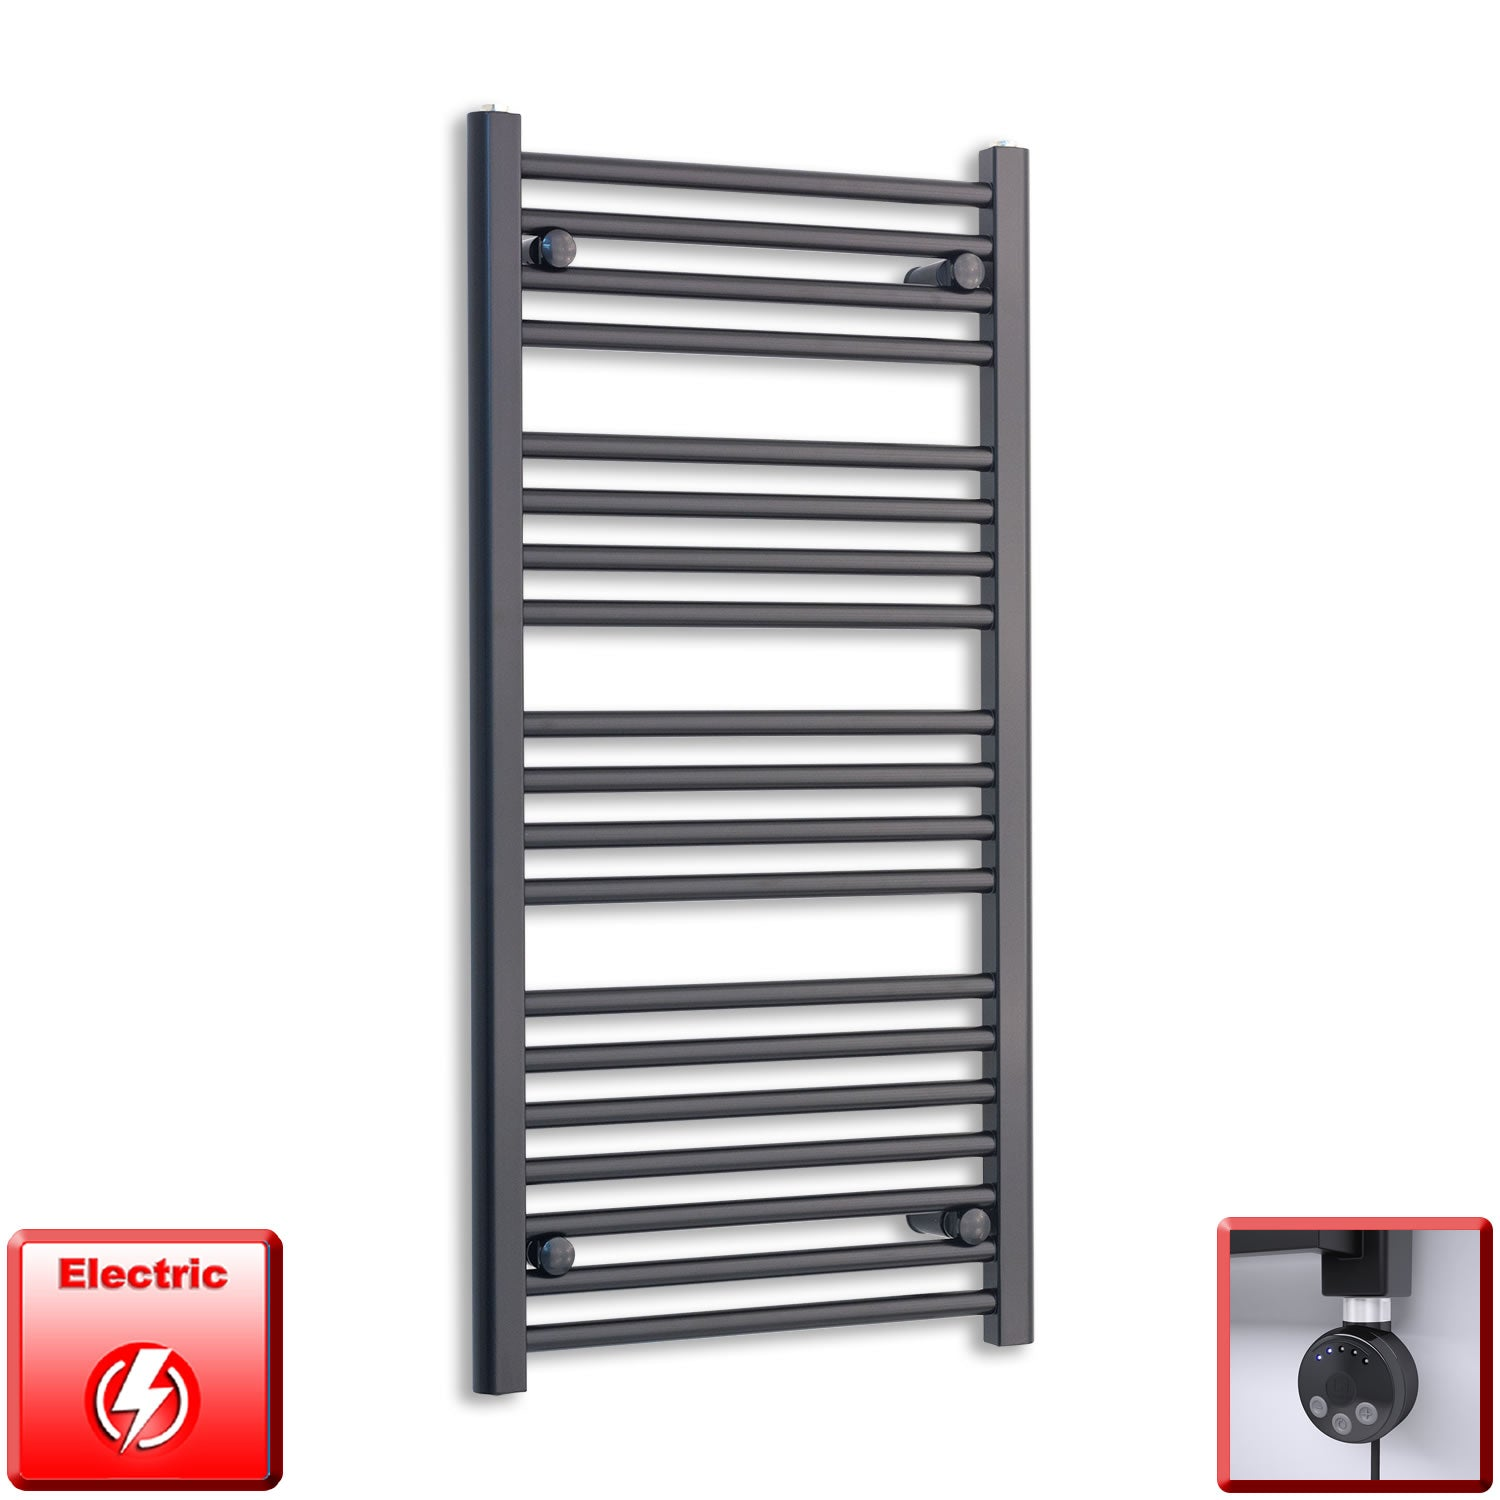 450mm Wide 1000mm High Pre-Filled Black Electric Towel Rail Radiator With Thermostatic MEG Element